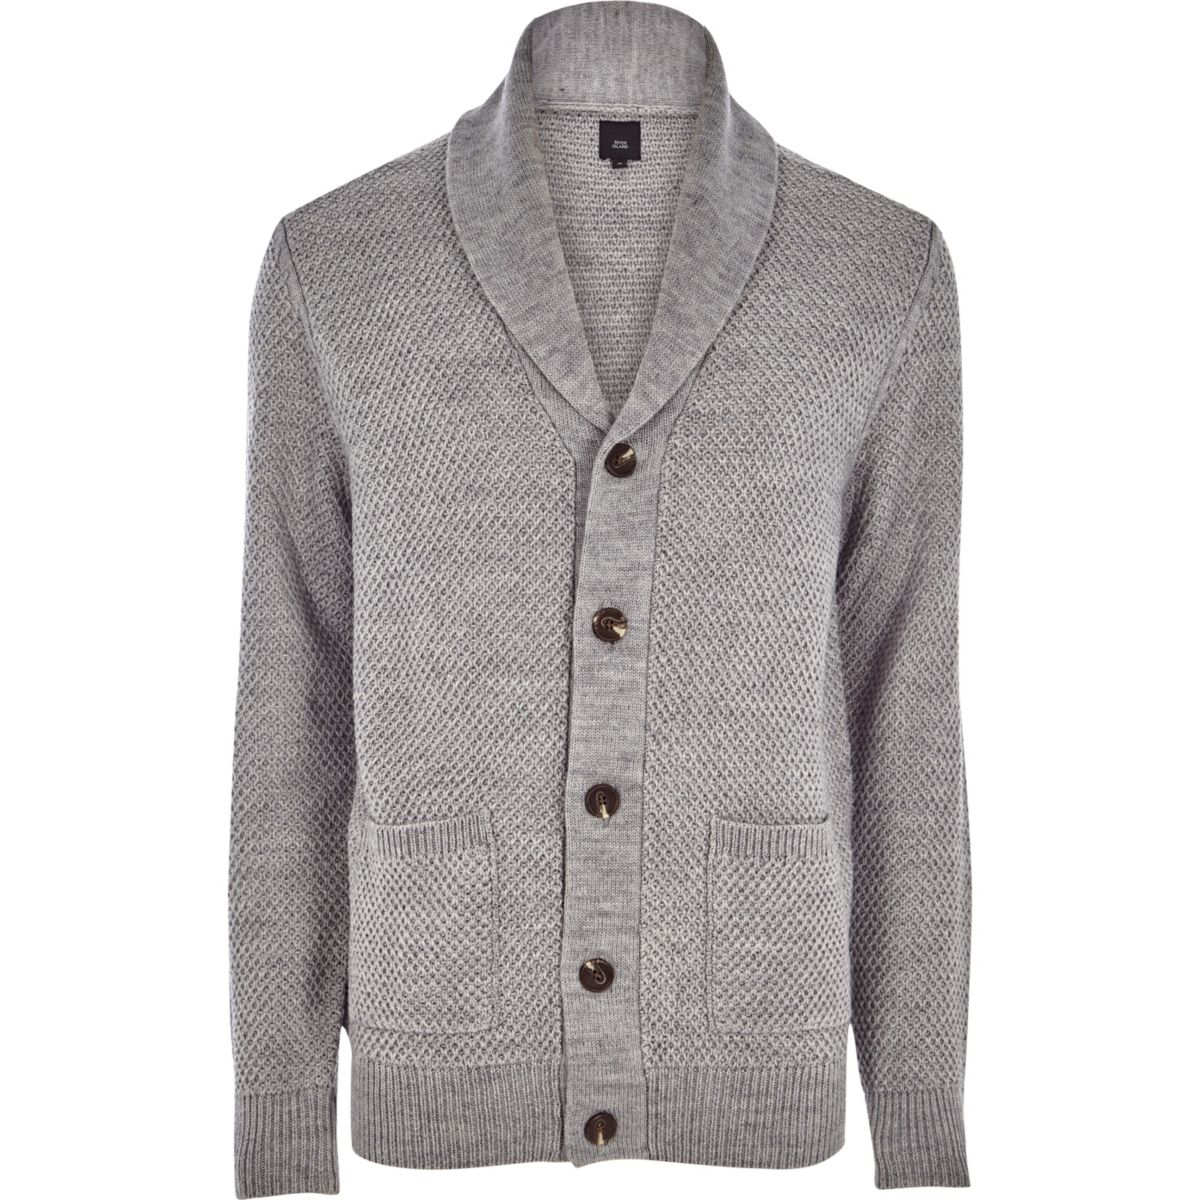 Grey shawl neck button-up knit cardigan